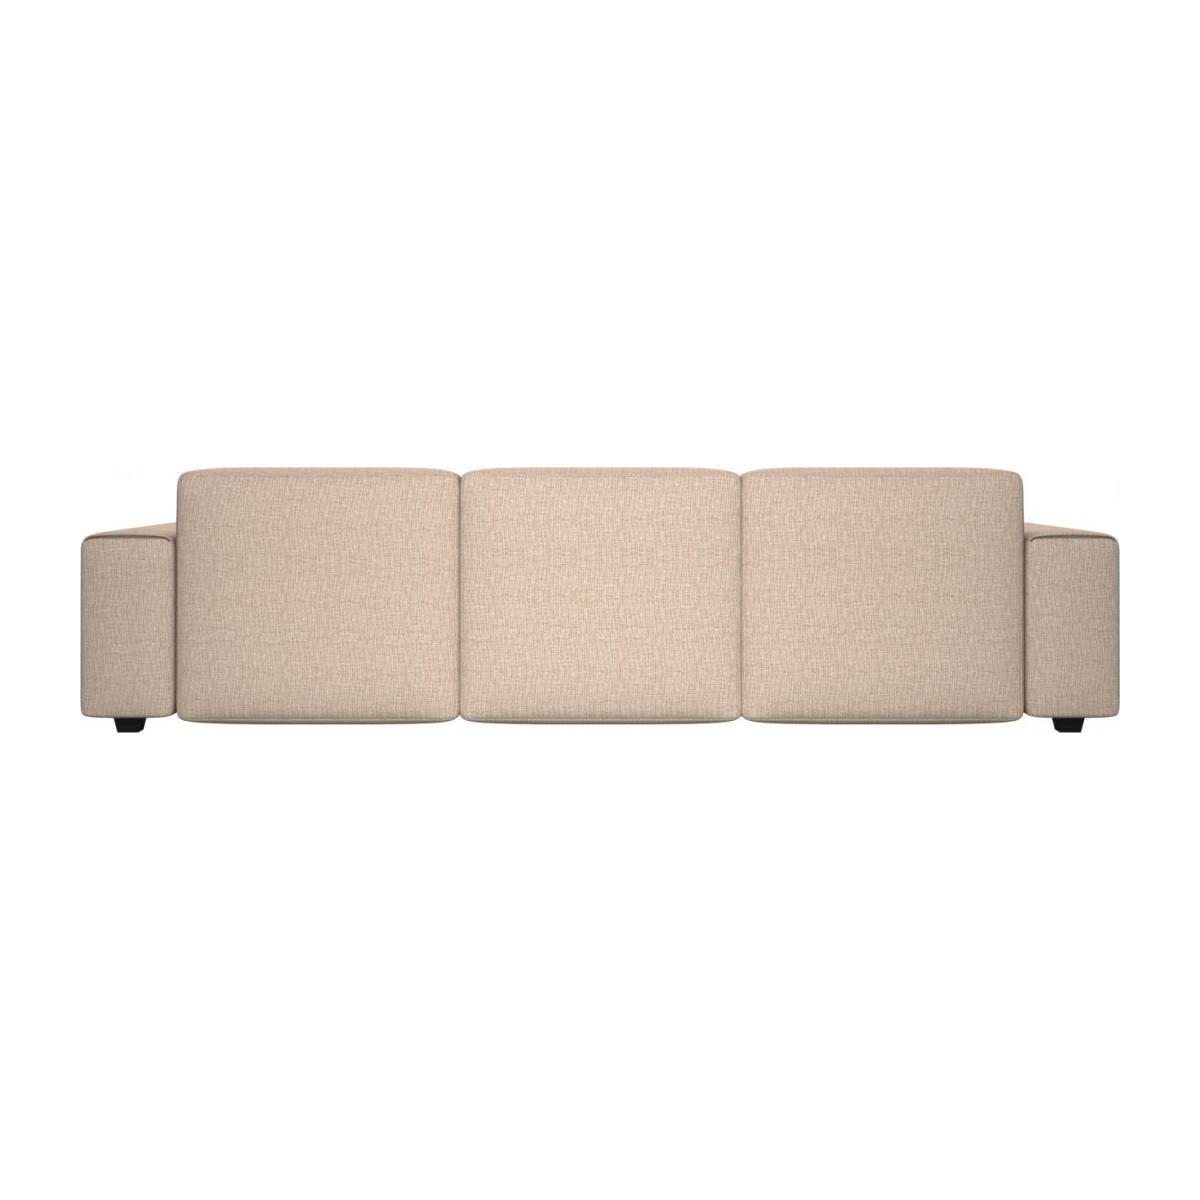 3 seater sofa with chaise longue on the right in Ancio fabric, nature n°3